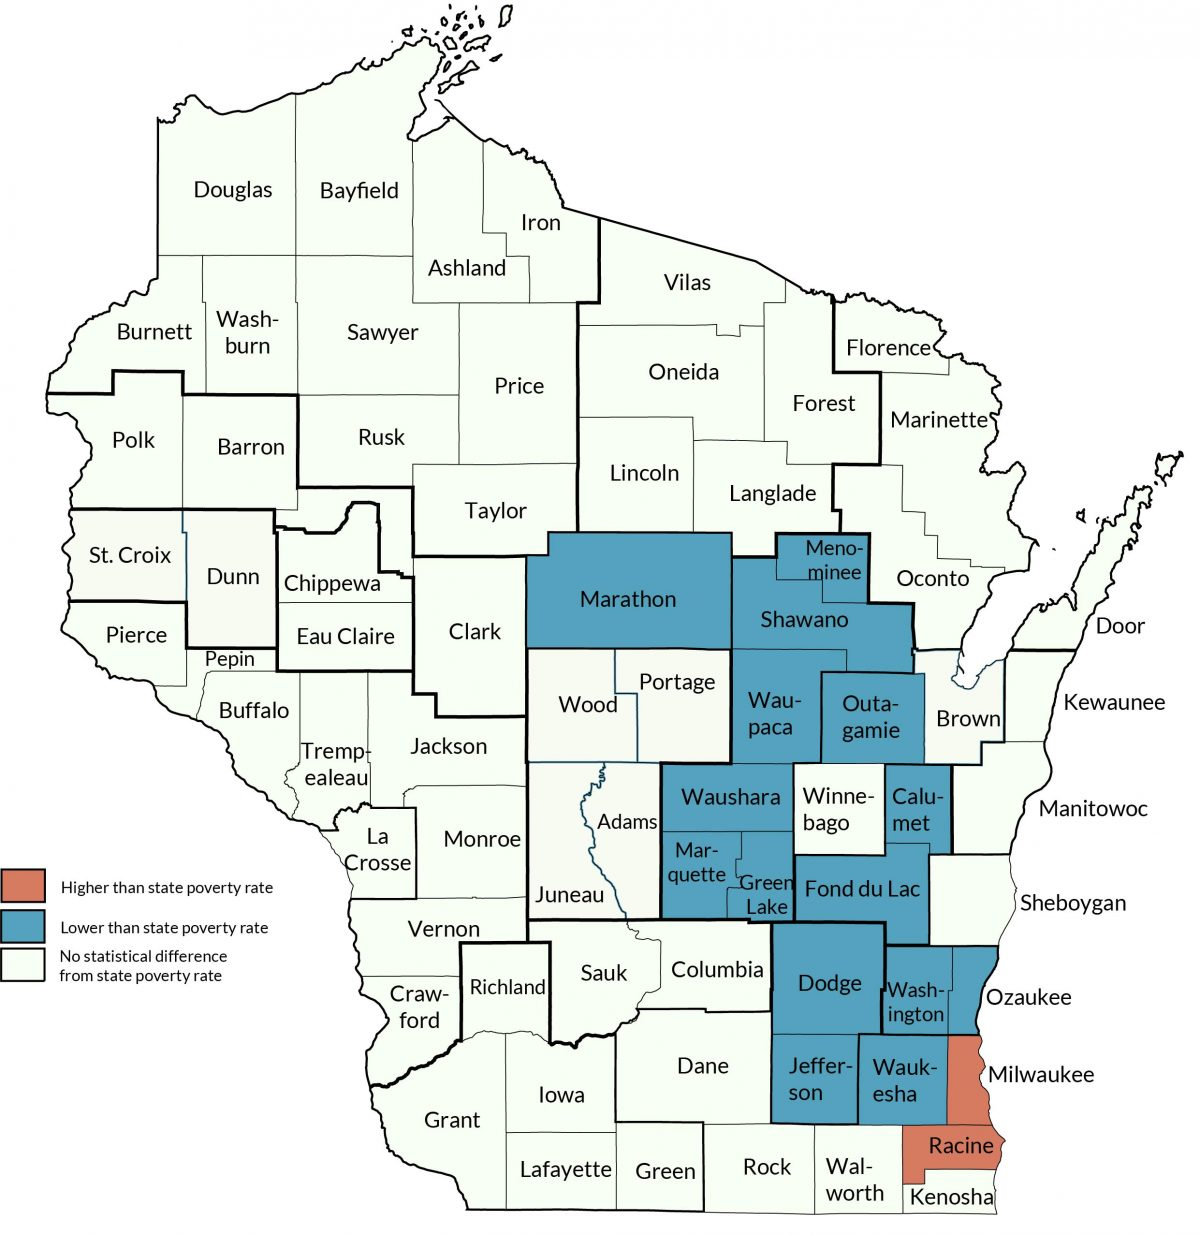 Most of Wisconsin had a poverty rate similar to the statewide average of 10.6 percent in 2018.